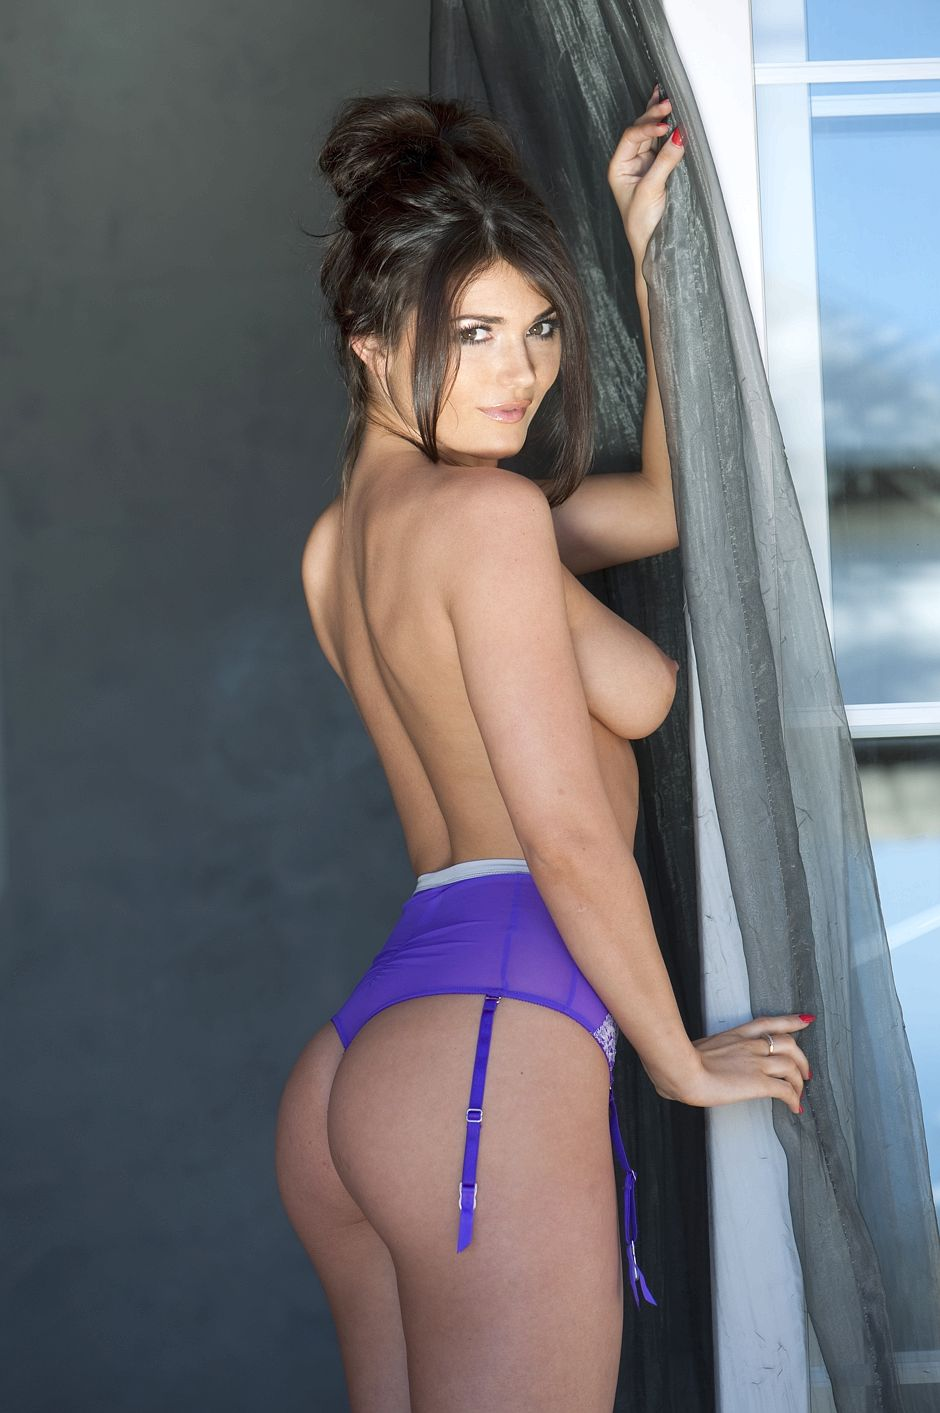 india-reynolds-topless-page-3-3